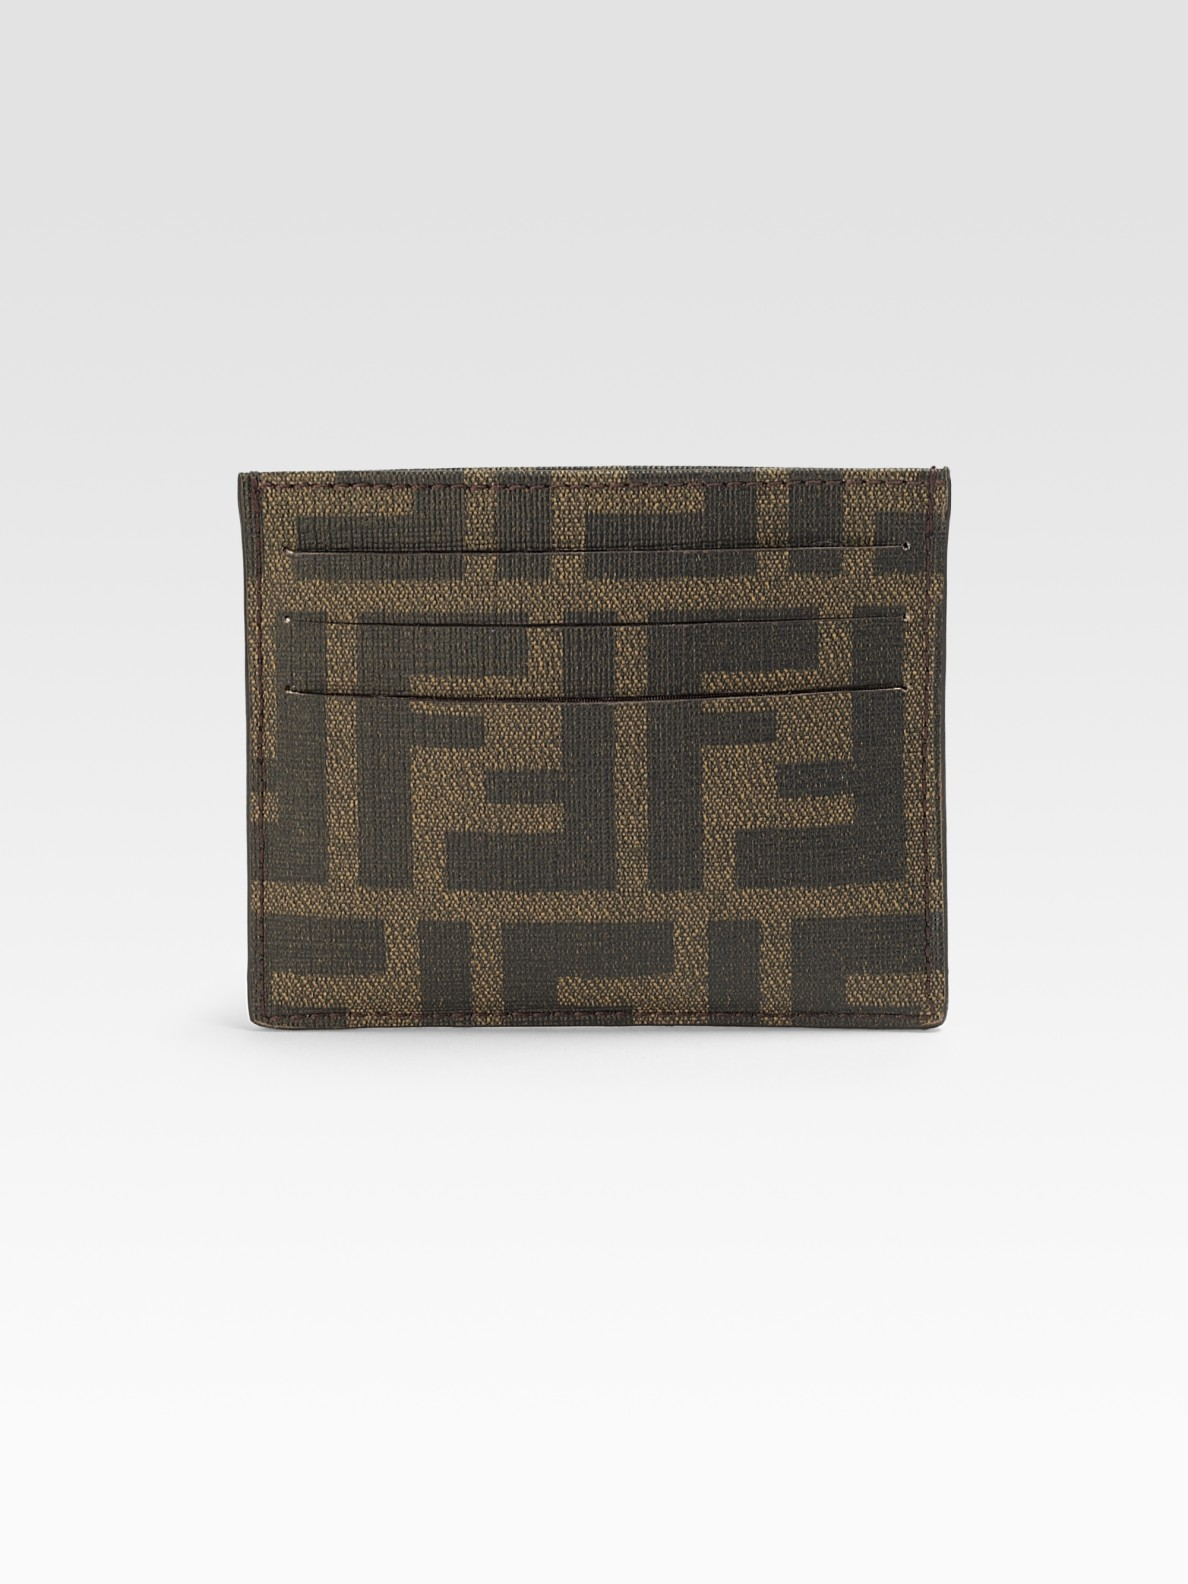 Fendi Business Card Holder Image collections - Business Card Template